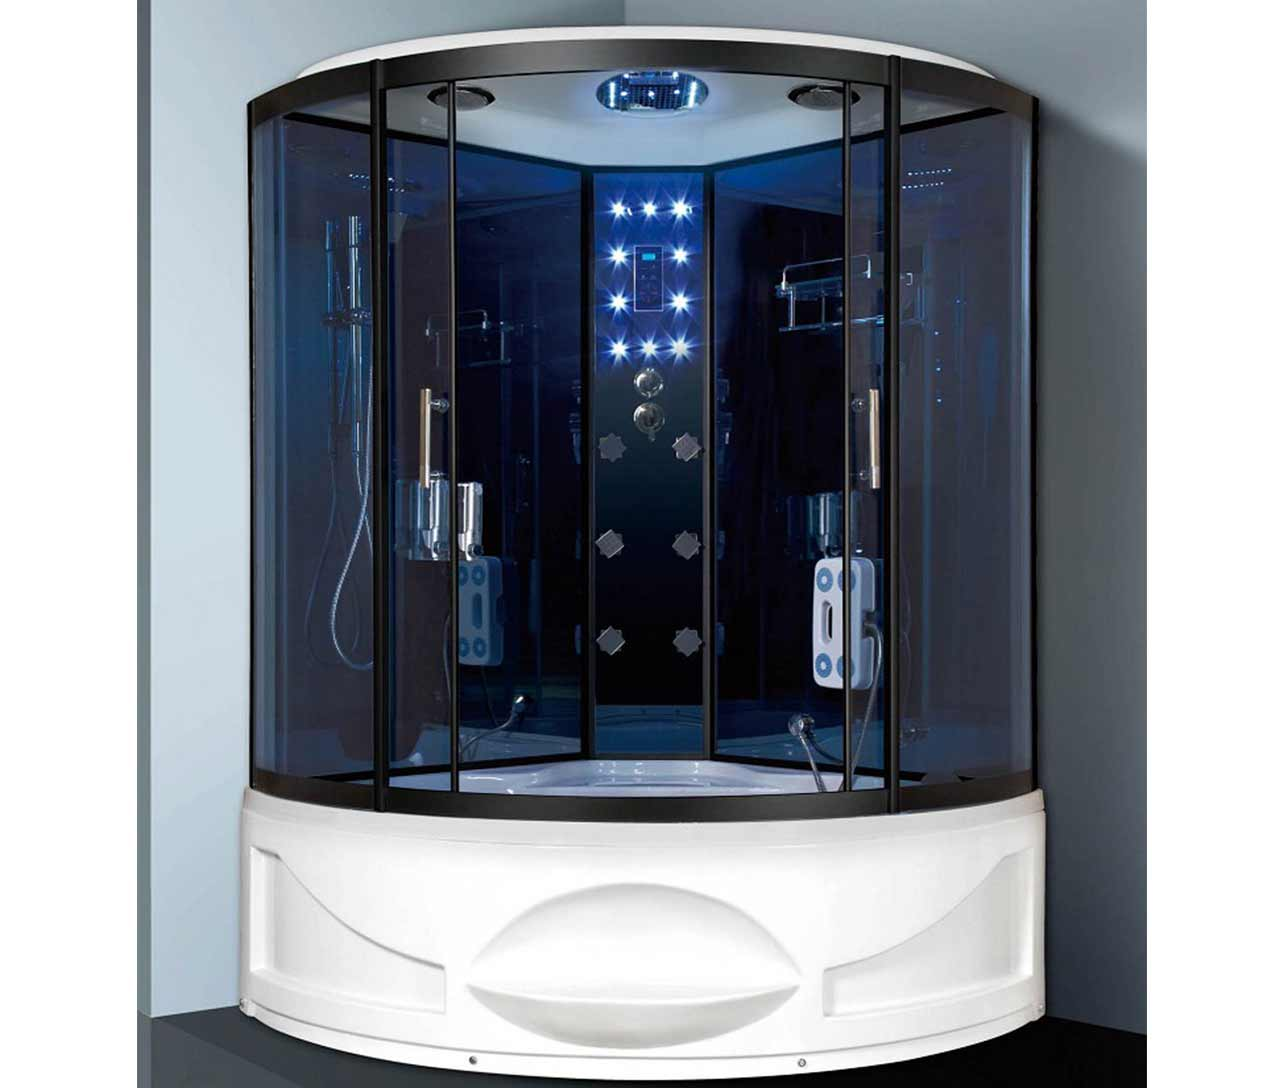 e 28 steam shower - Luxury Steam Showers